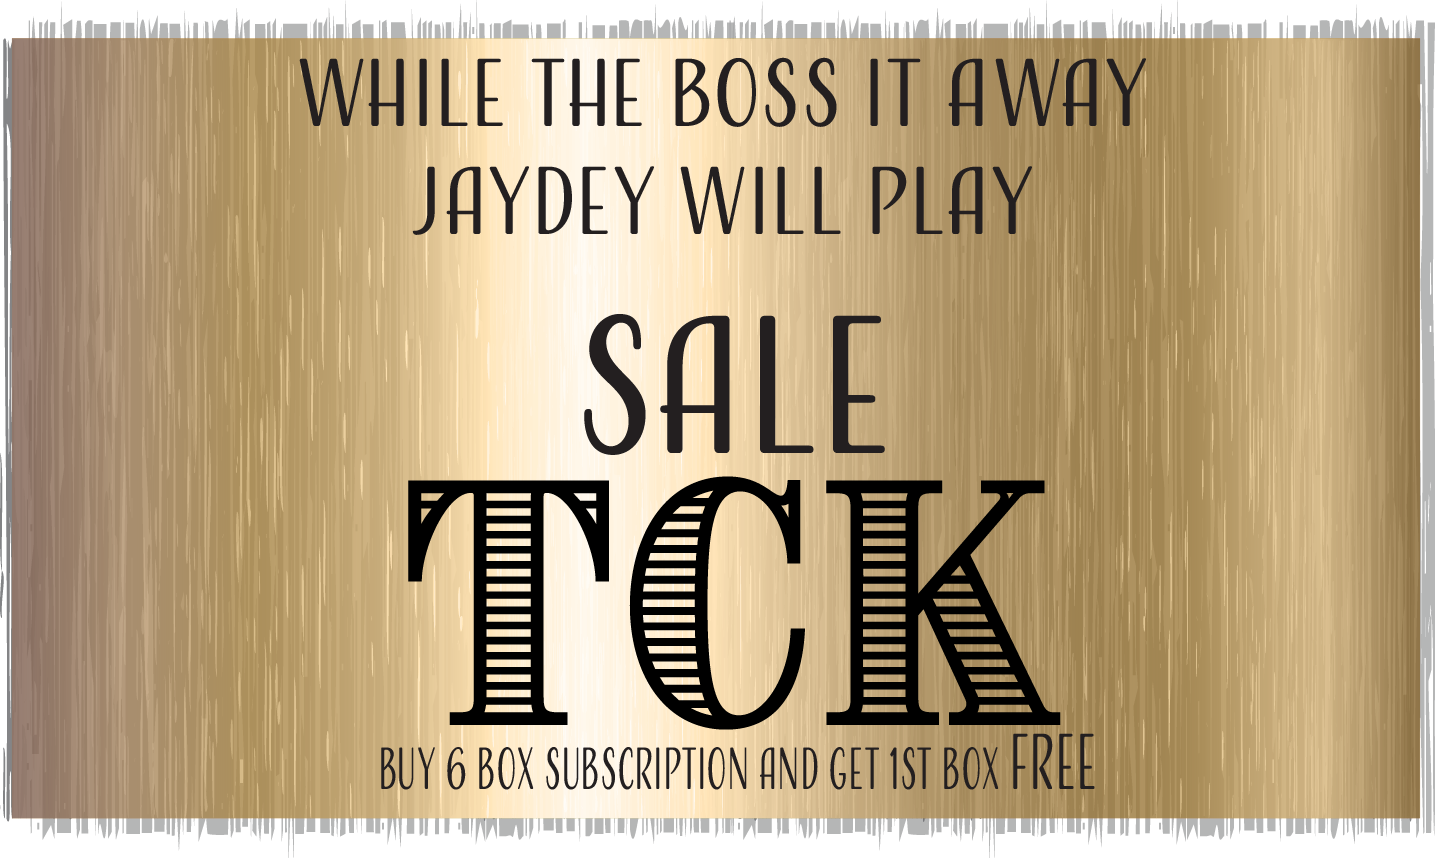 While to Boss is Away SALE - TCK